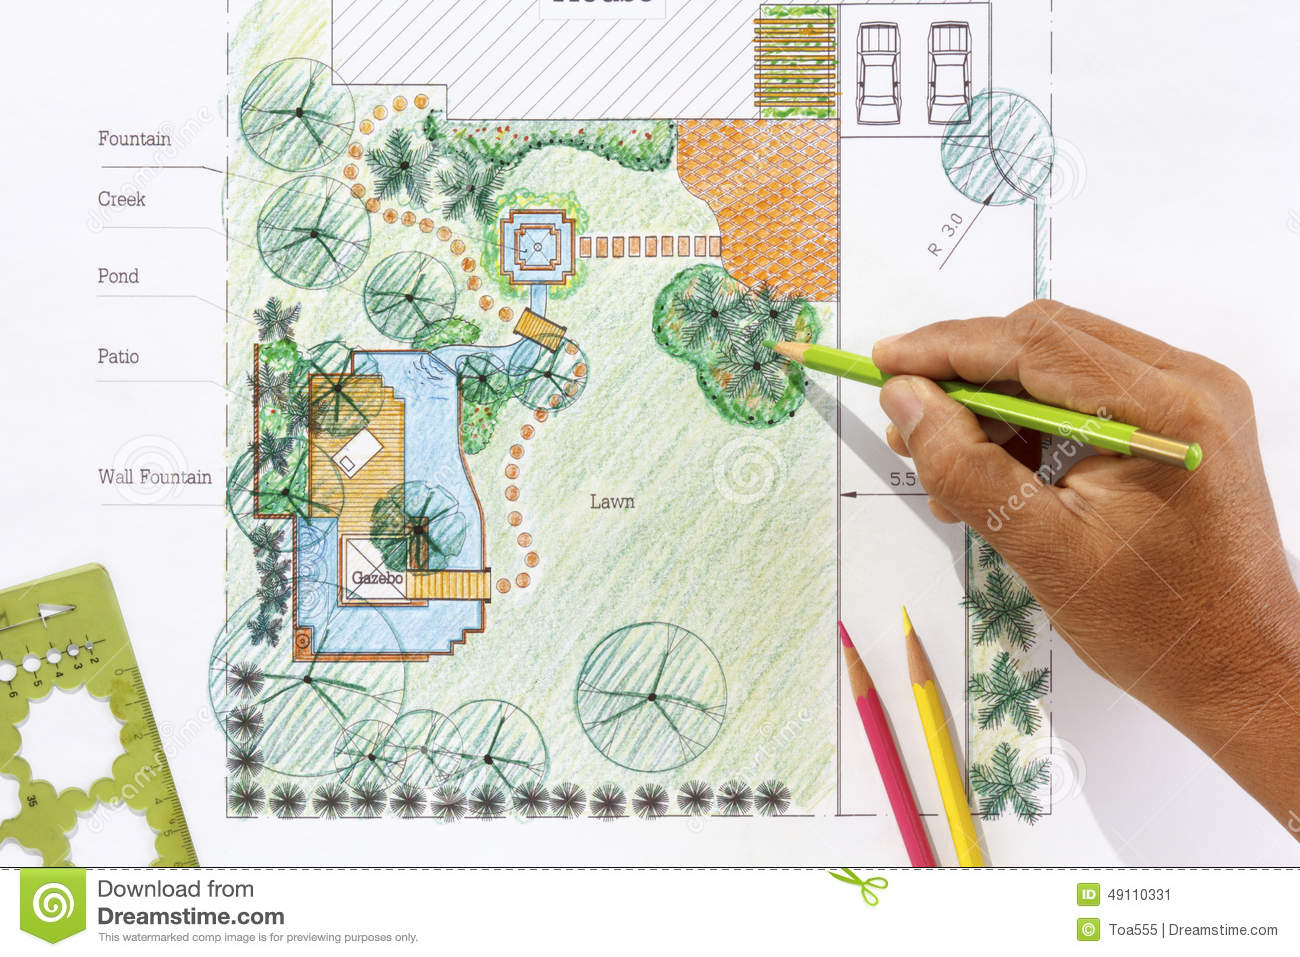 Landscape architect design water garden plans stock photo for Water landscape design